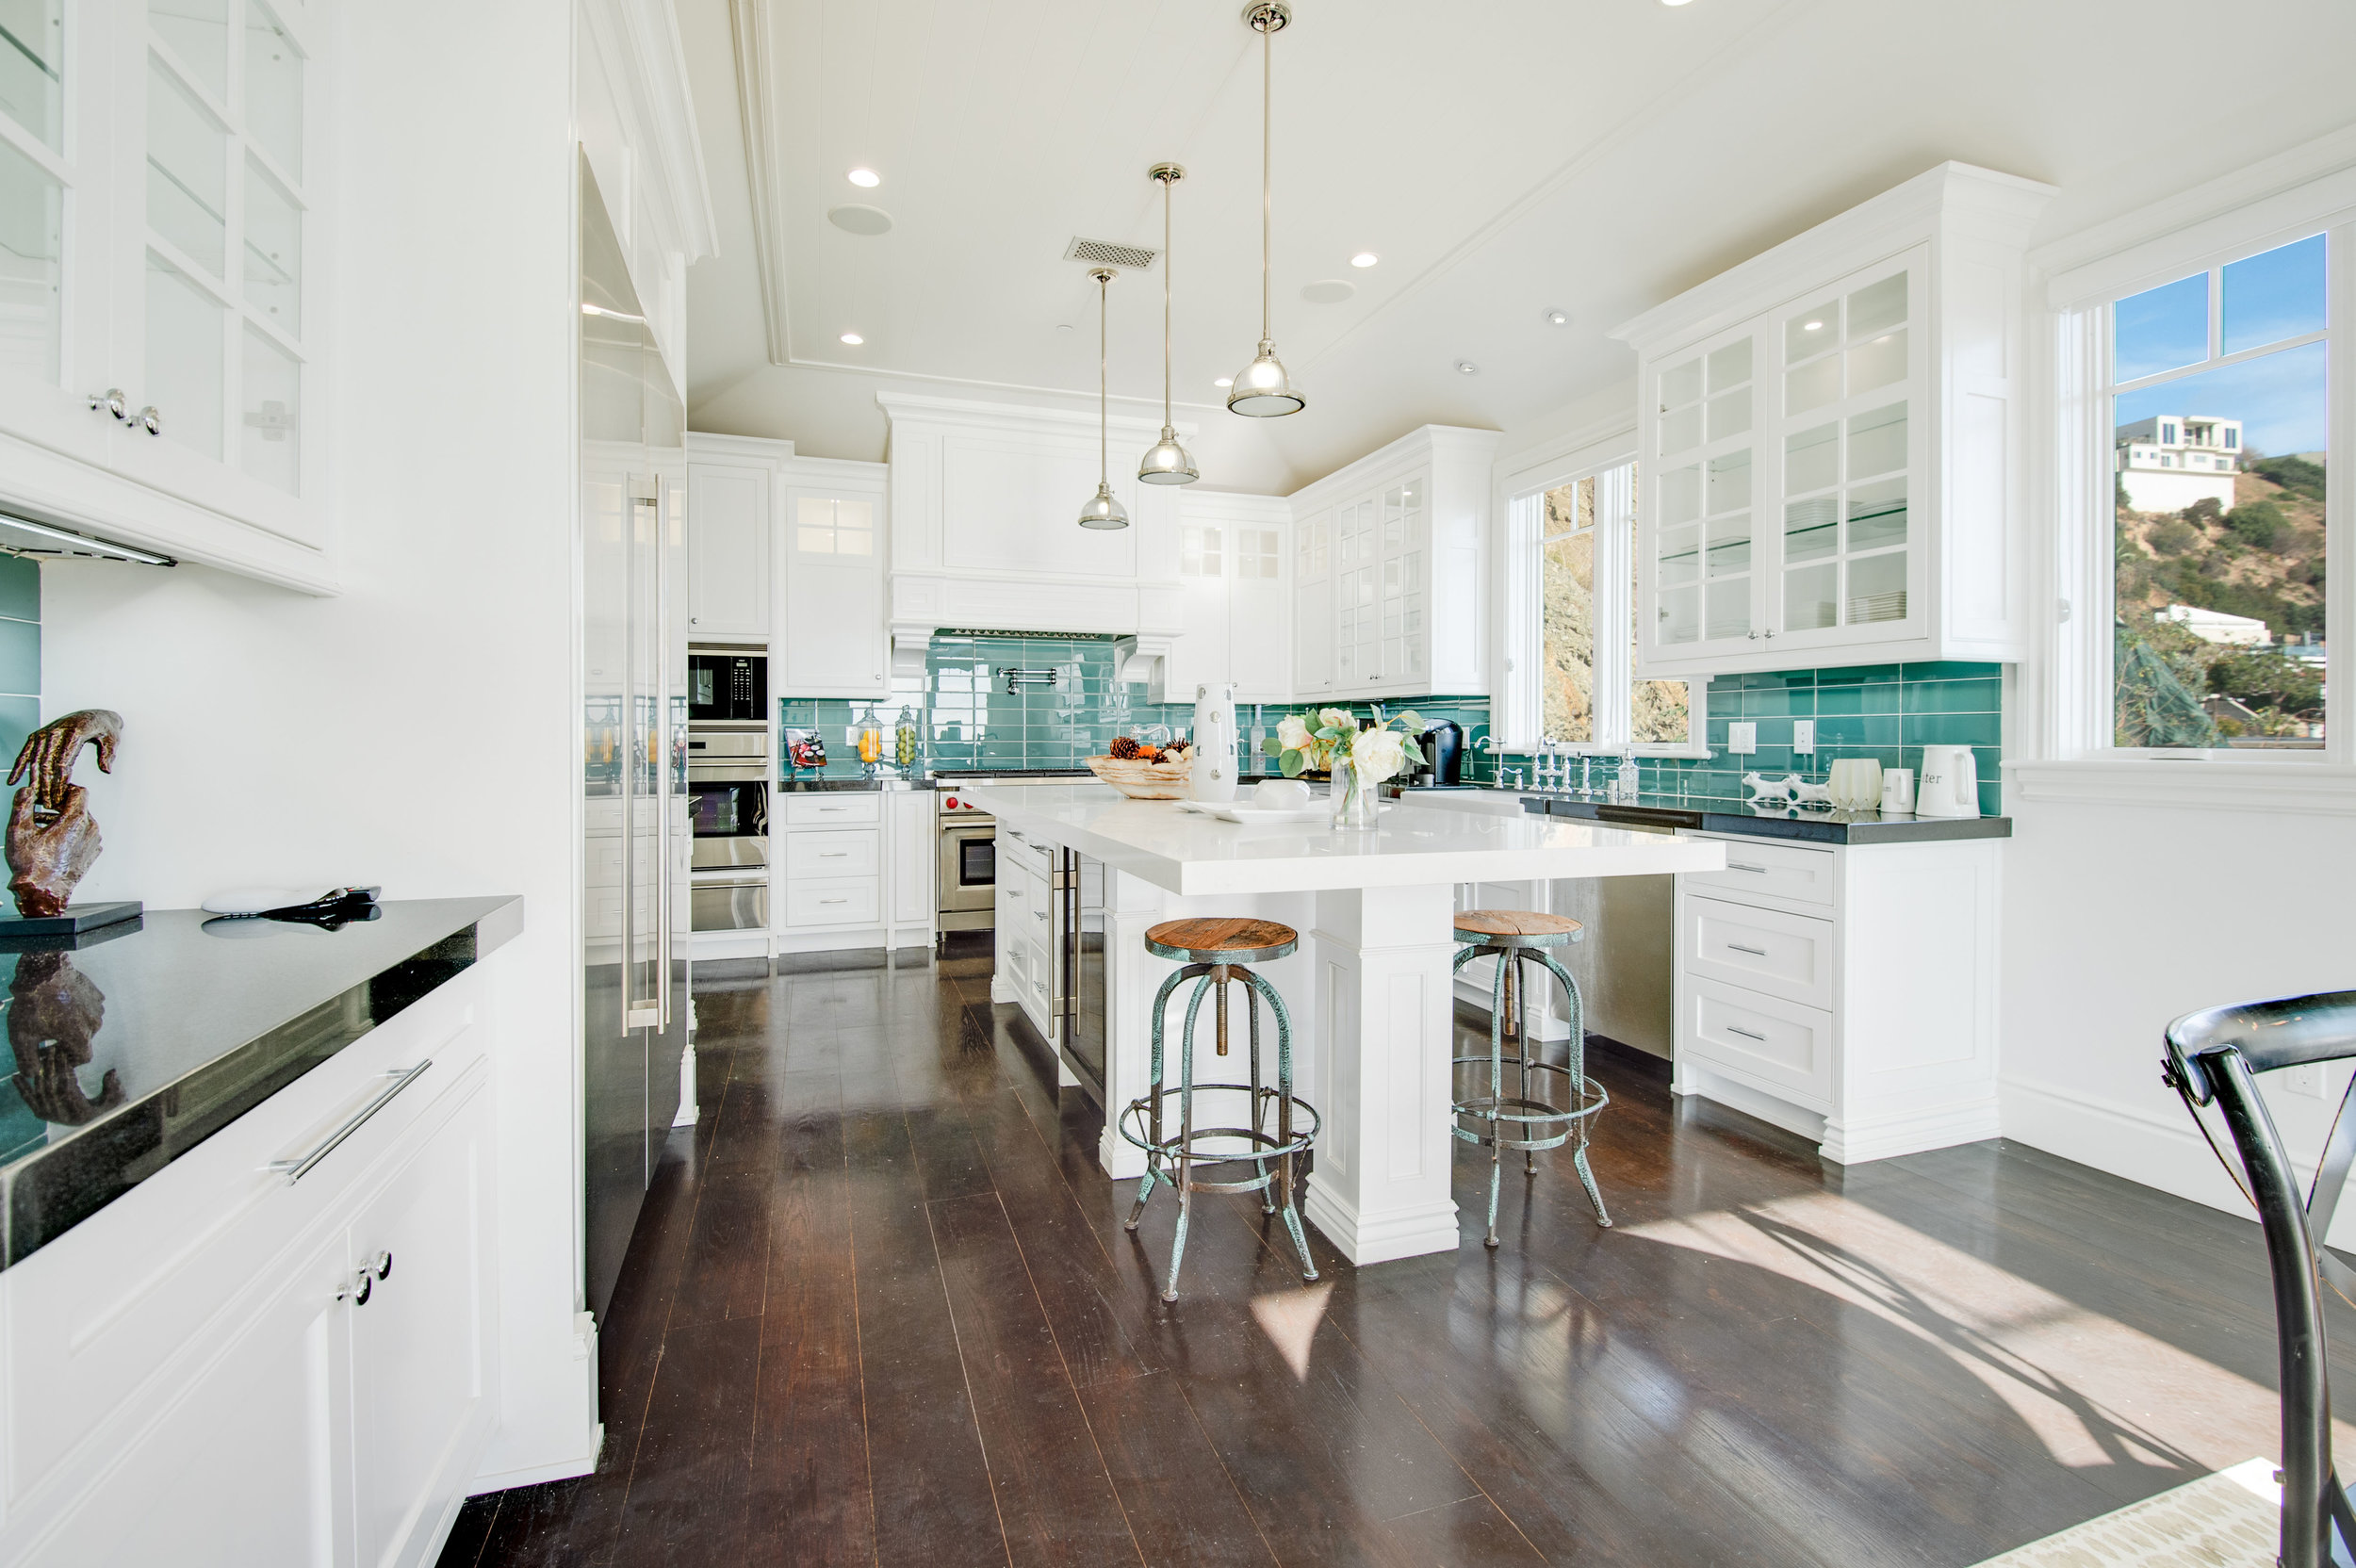 009 Kitchen 17819 Castellammare Drive Pacific Palisades For Sale Lease The Malibu Life Team Compass Luxury Real Estate.jpg